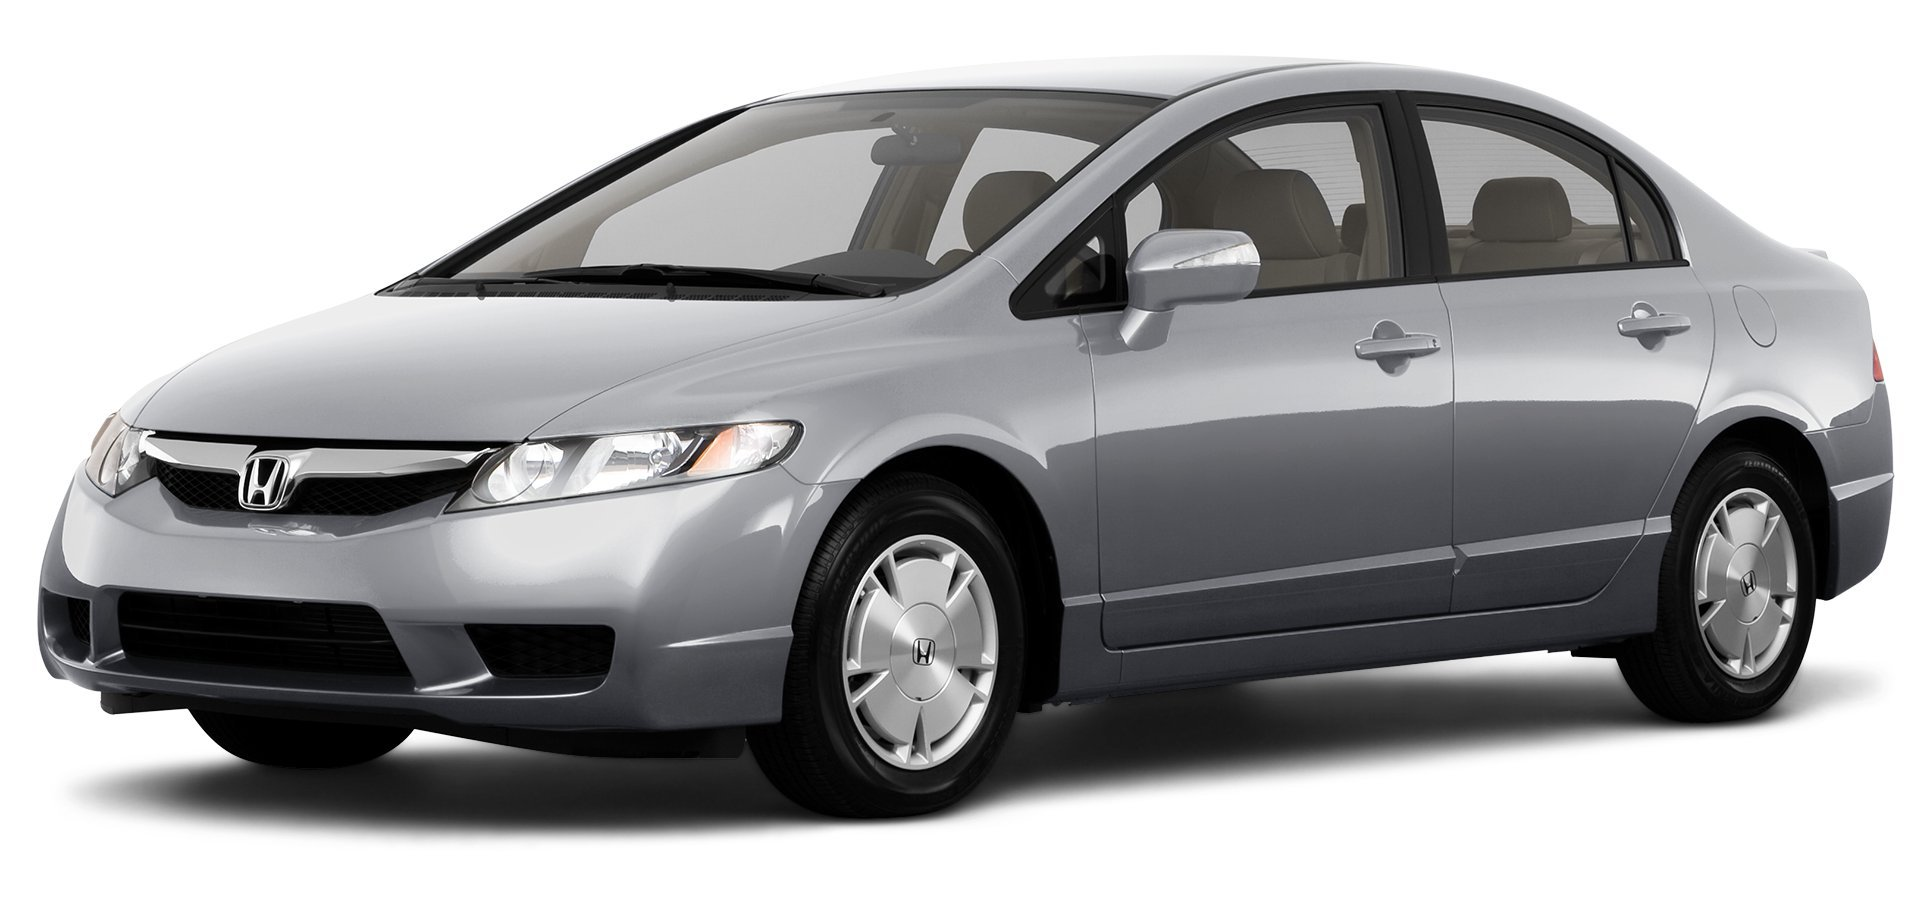 Amazon Com 2010 Honda Civic Reviews Images And Specs